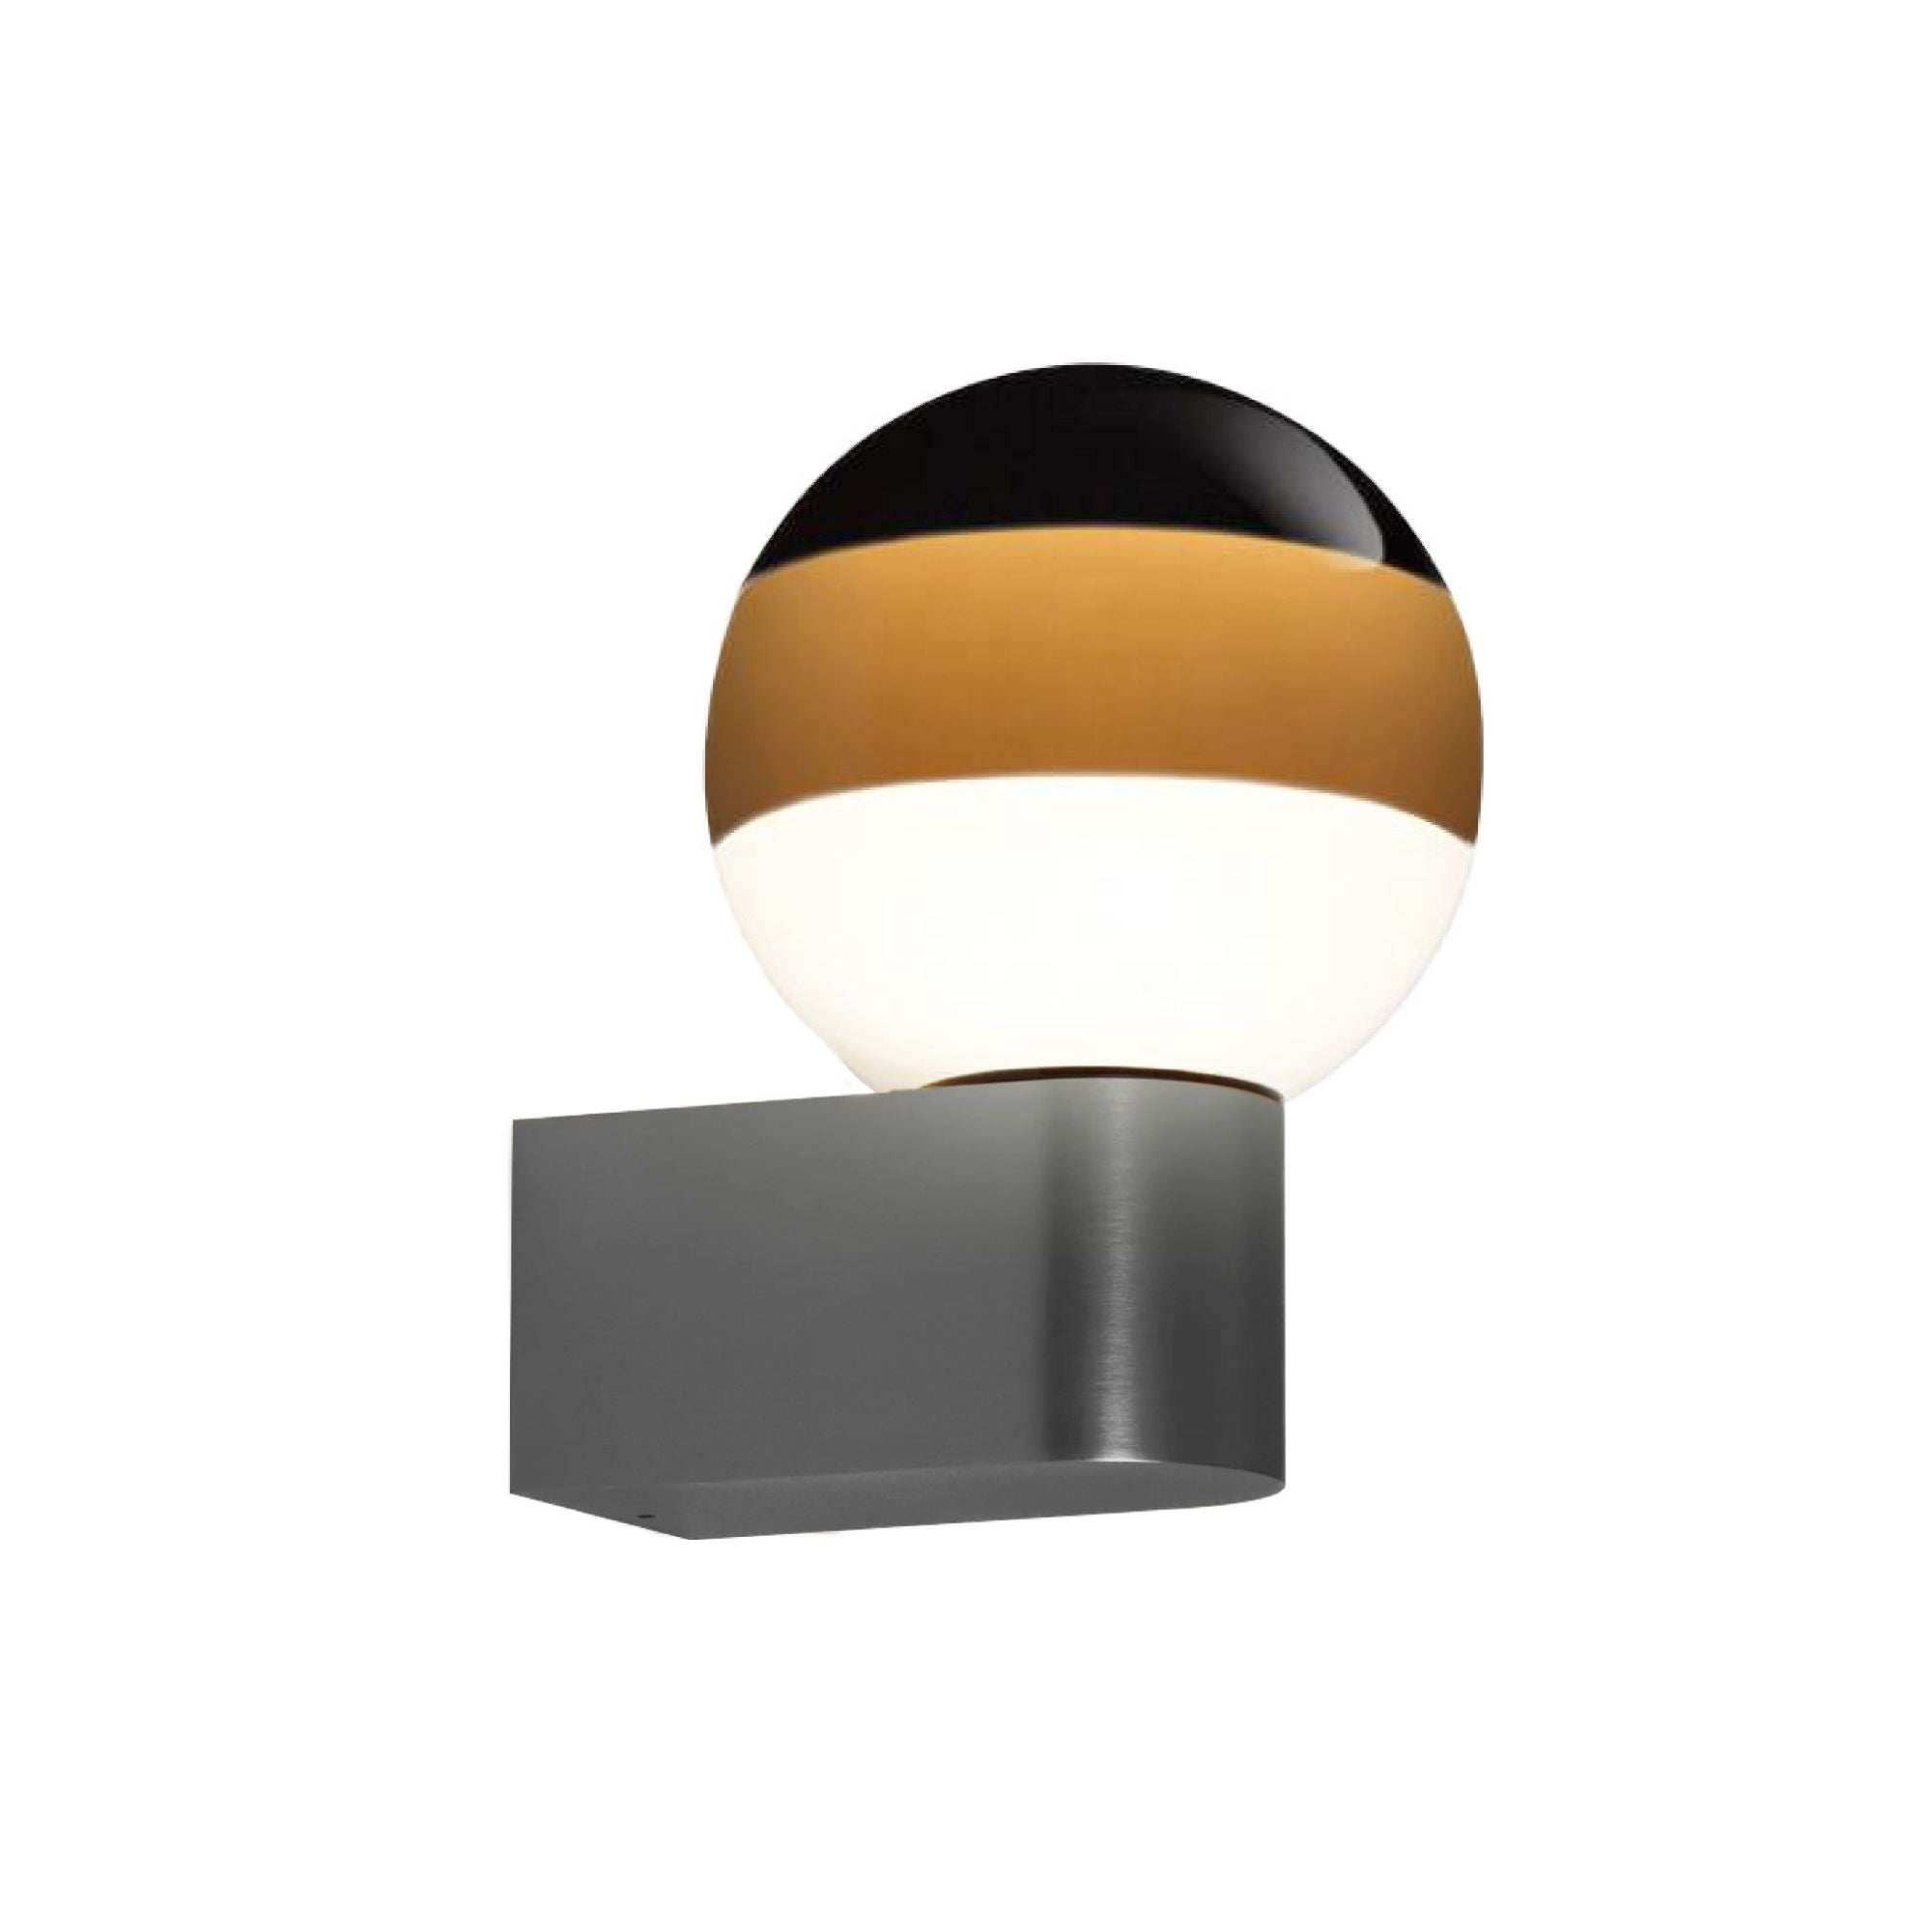 Marset Dipping light A1-13 wall lamp, black